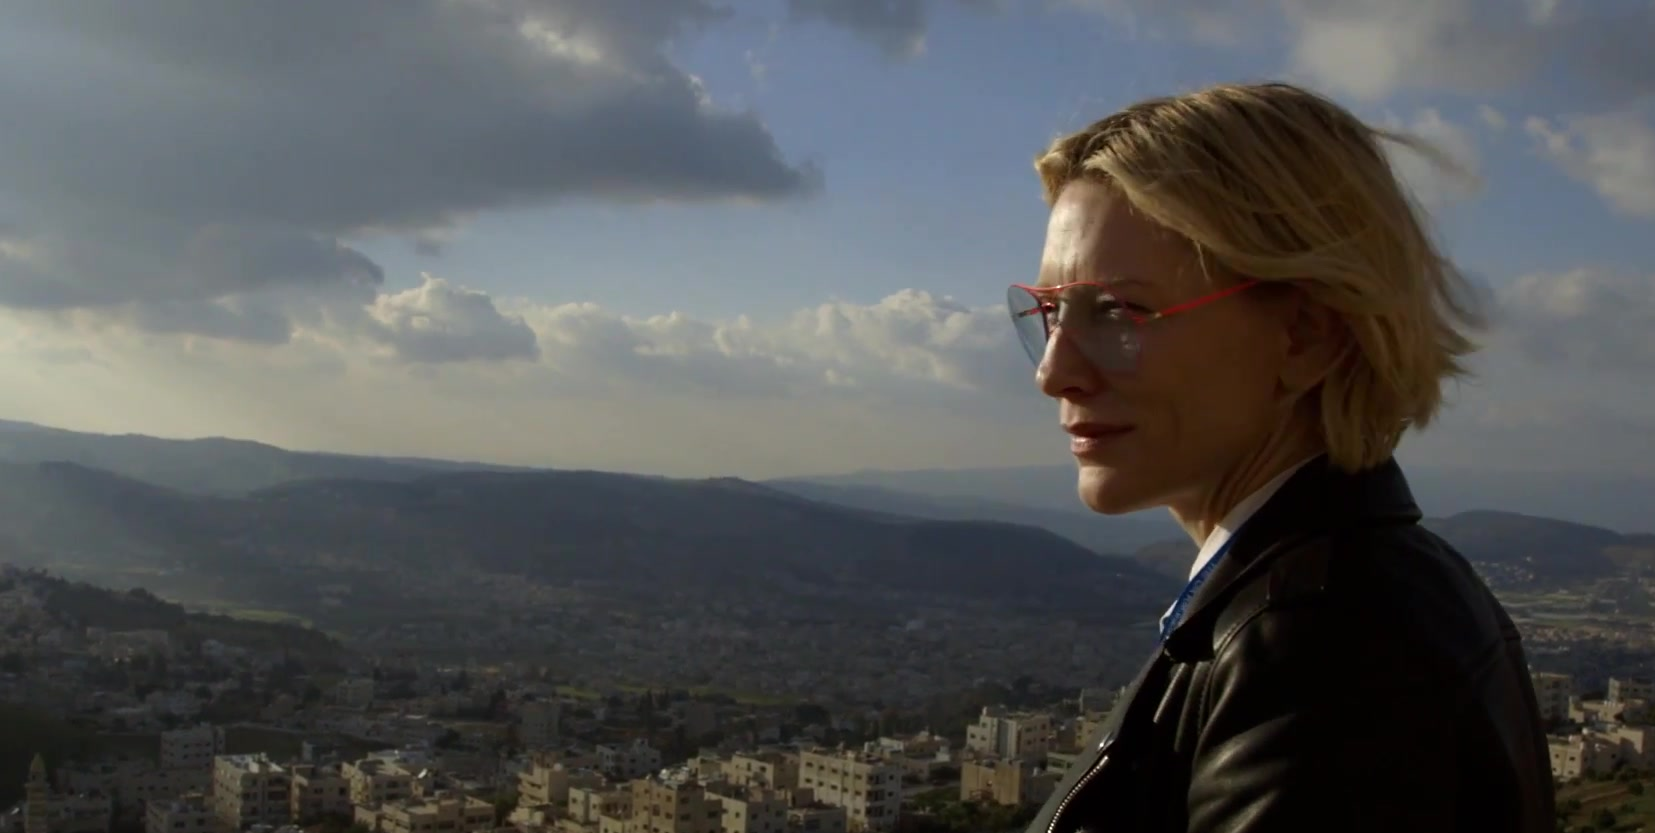 Cate Blanchett becomes global Goodwill Ambassador for UNHCR and visit refugees camp in Jordan